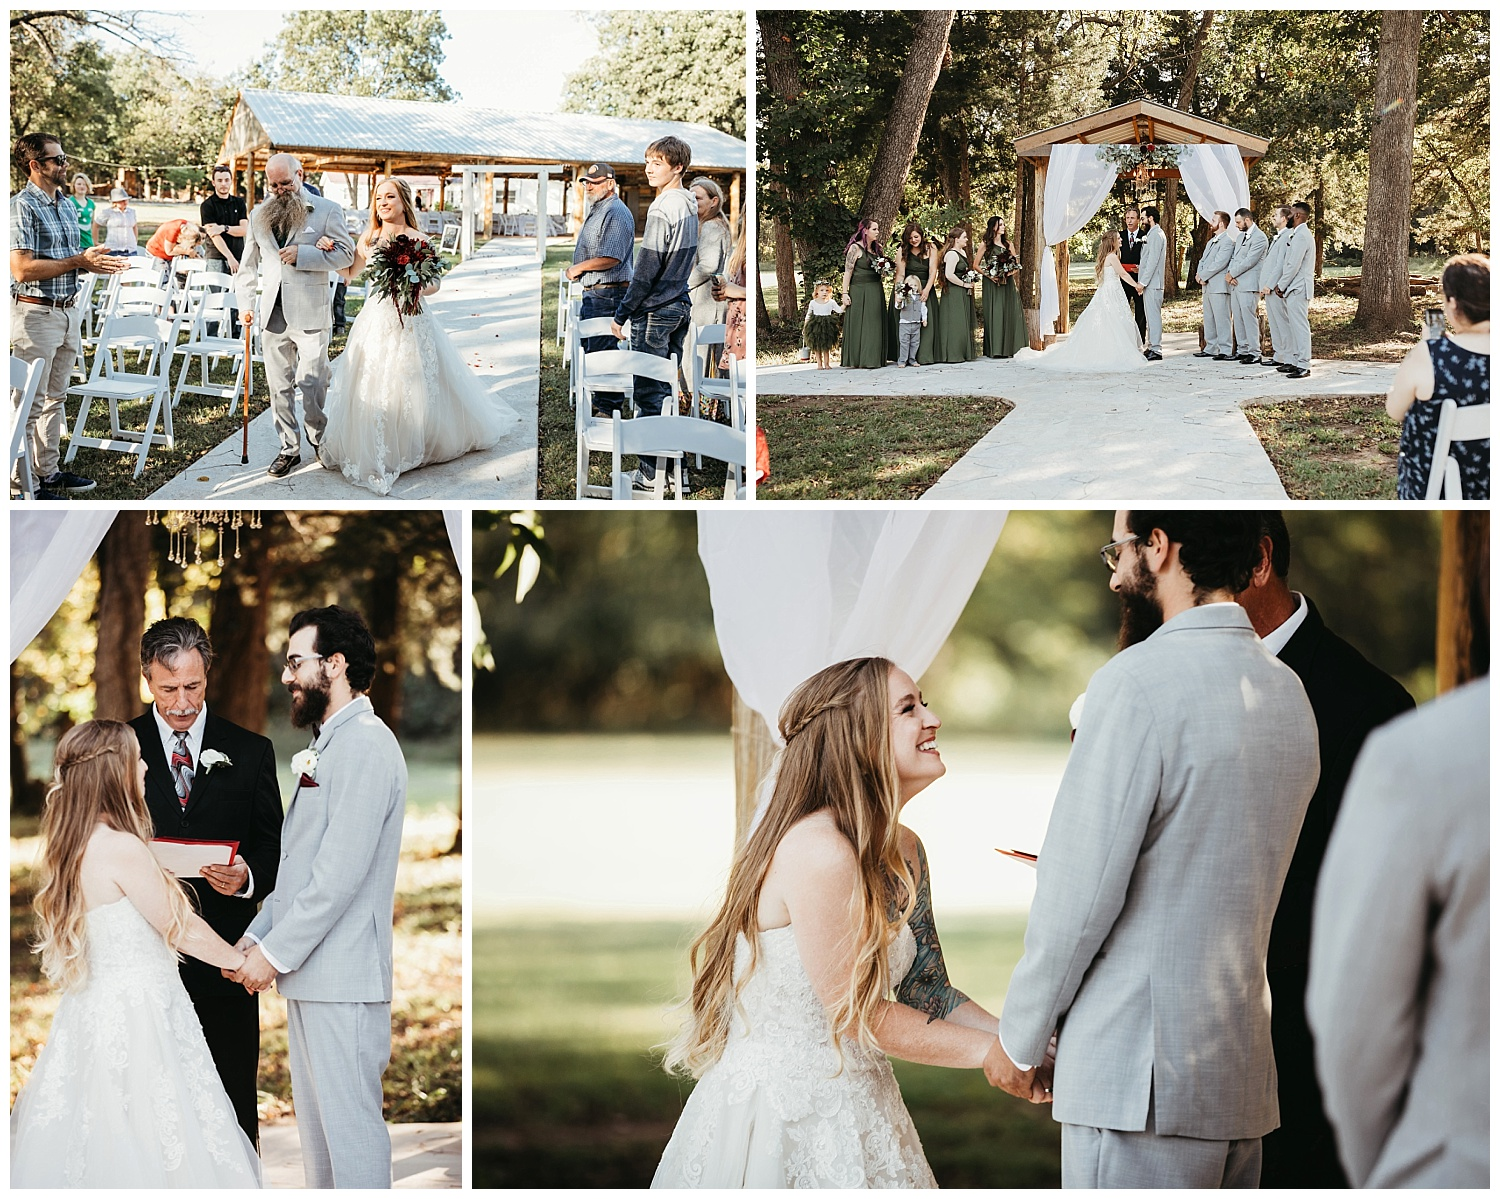 Mikey and Amber Wedding Ceremony at the Ranch of the Saints.